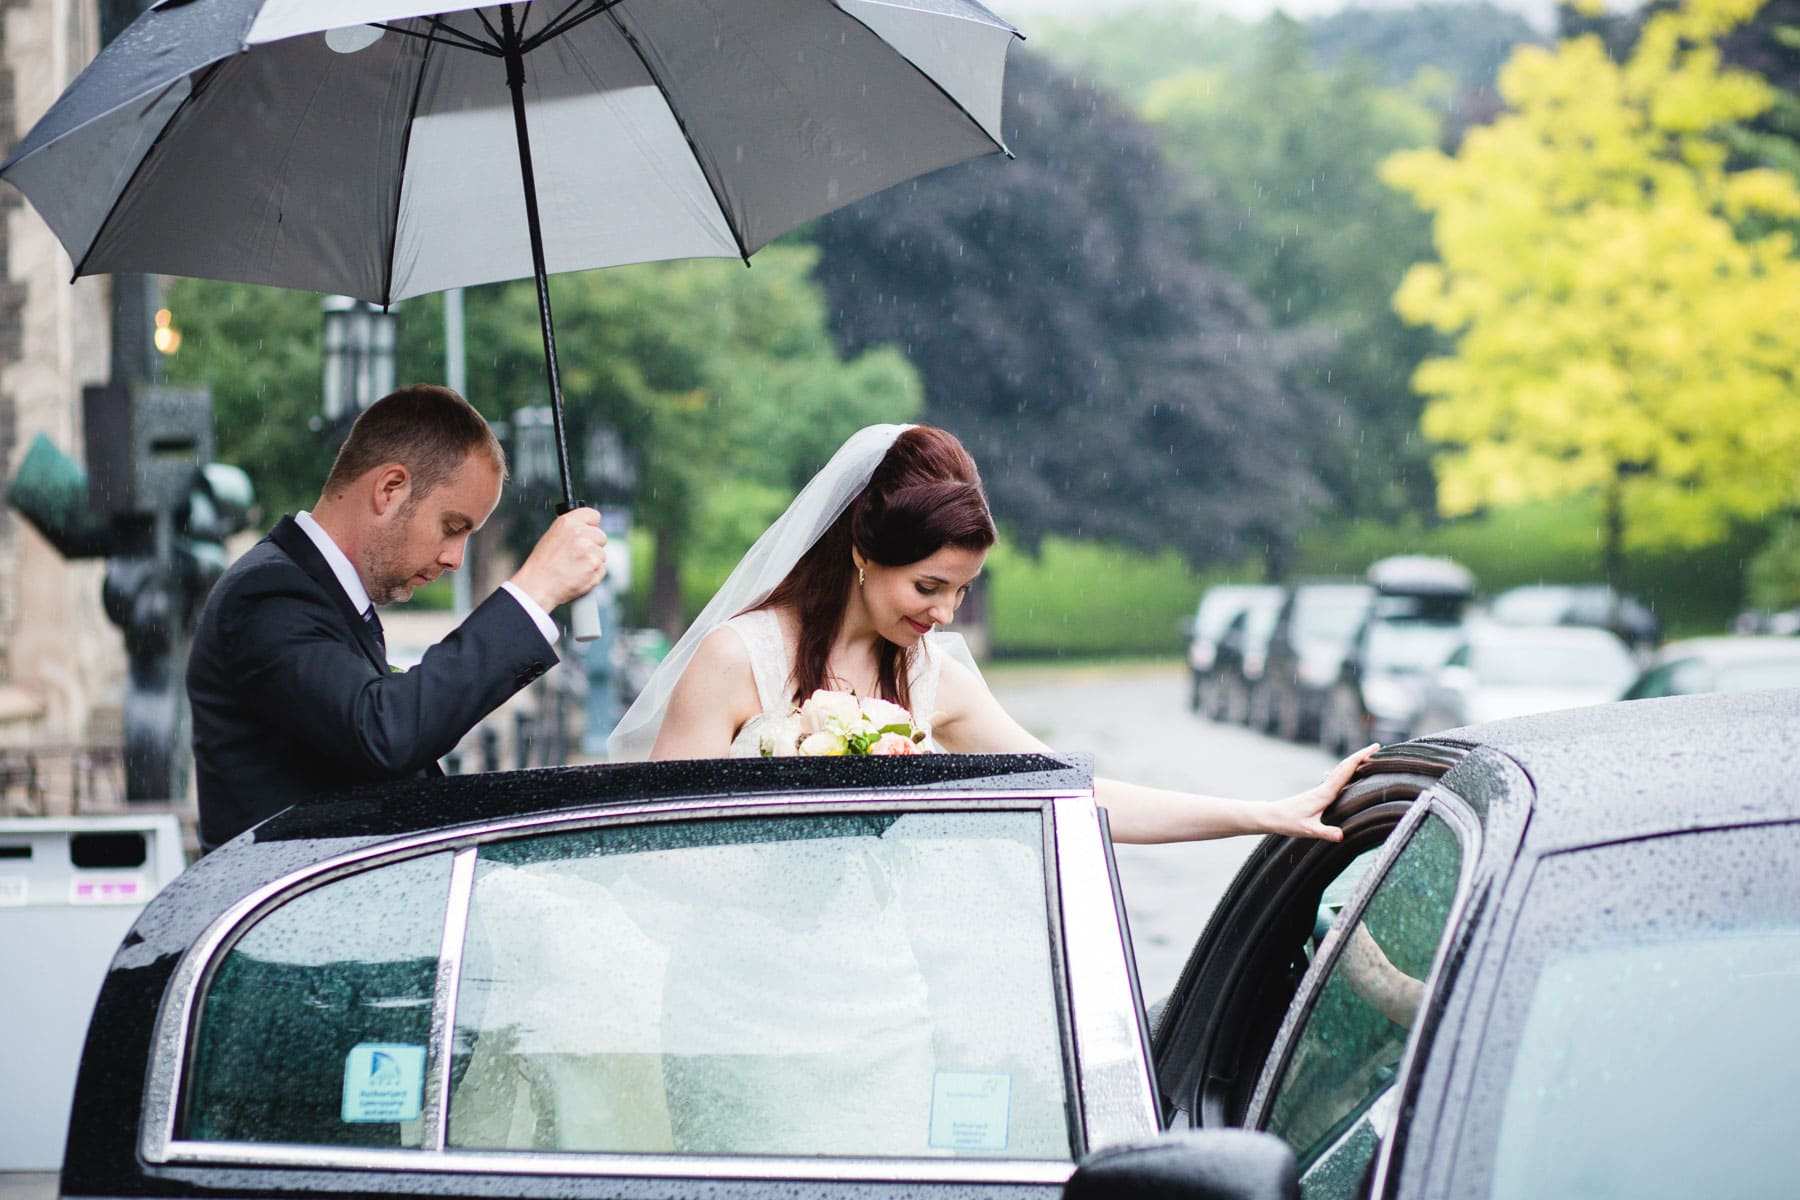 The groom holds an umbrella over the bride as she gets into their limo during a rainy day at this Hart House wedding.